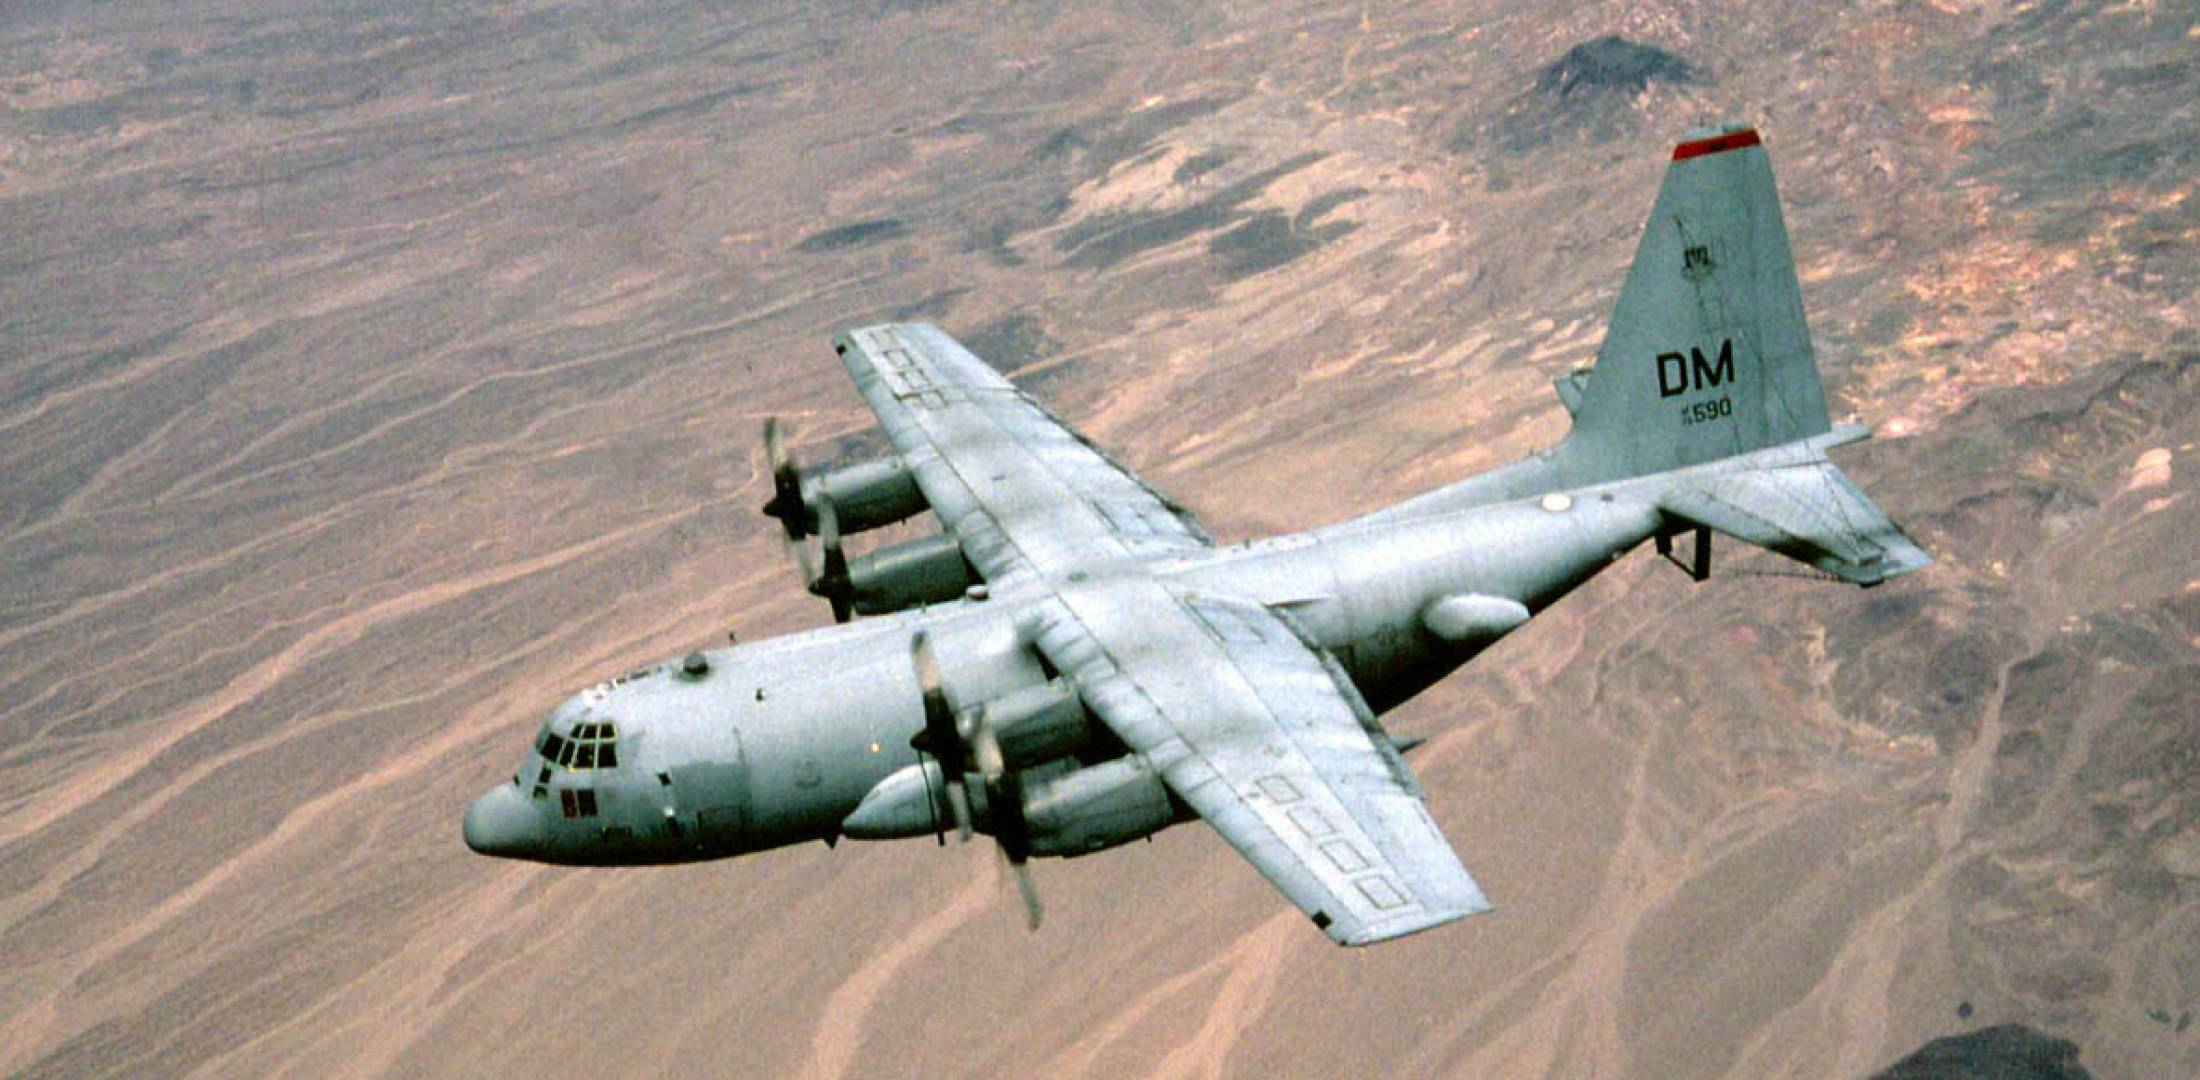 White House, Congress Differ on EC-130H Recapitalization